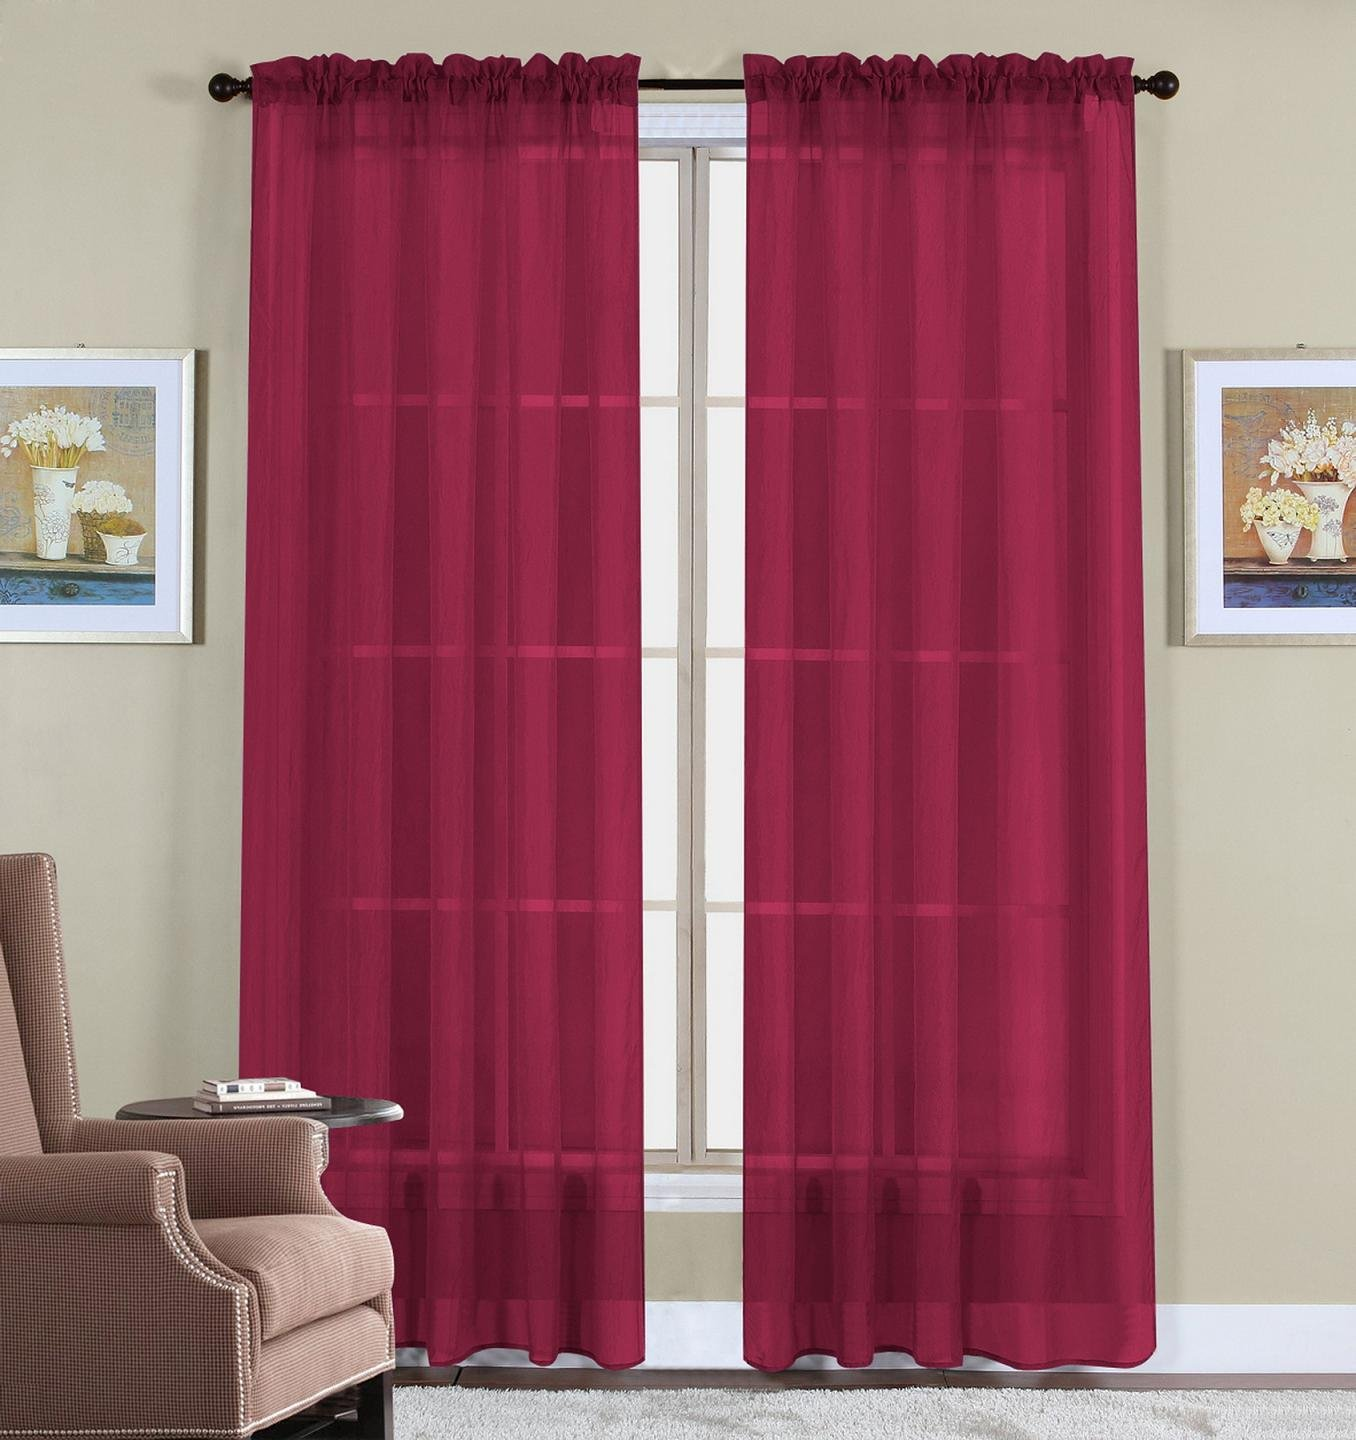 for ideas inch short room blinds bedroom curtain curtains full amazon shocking walmart size living window with and of drapes long